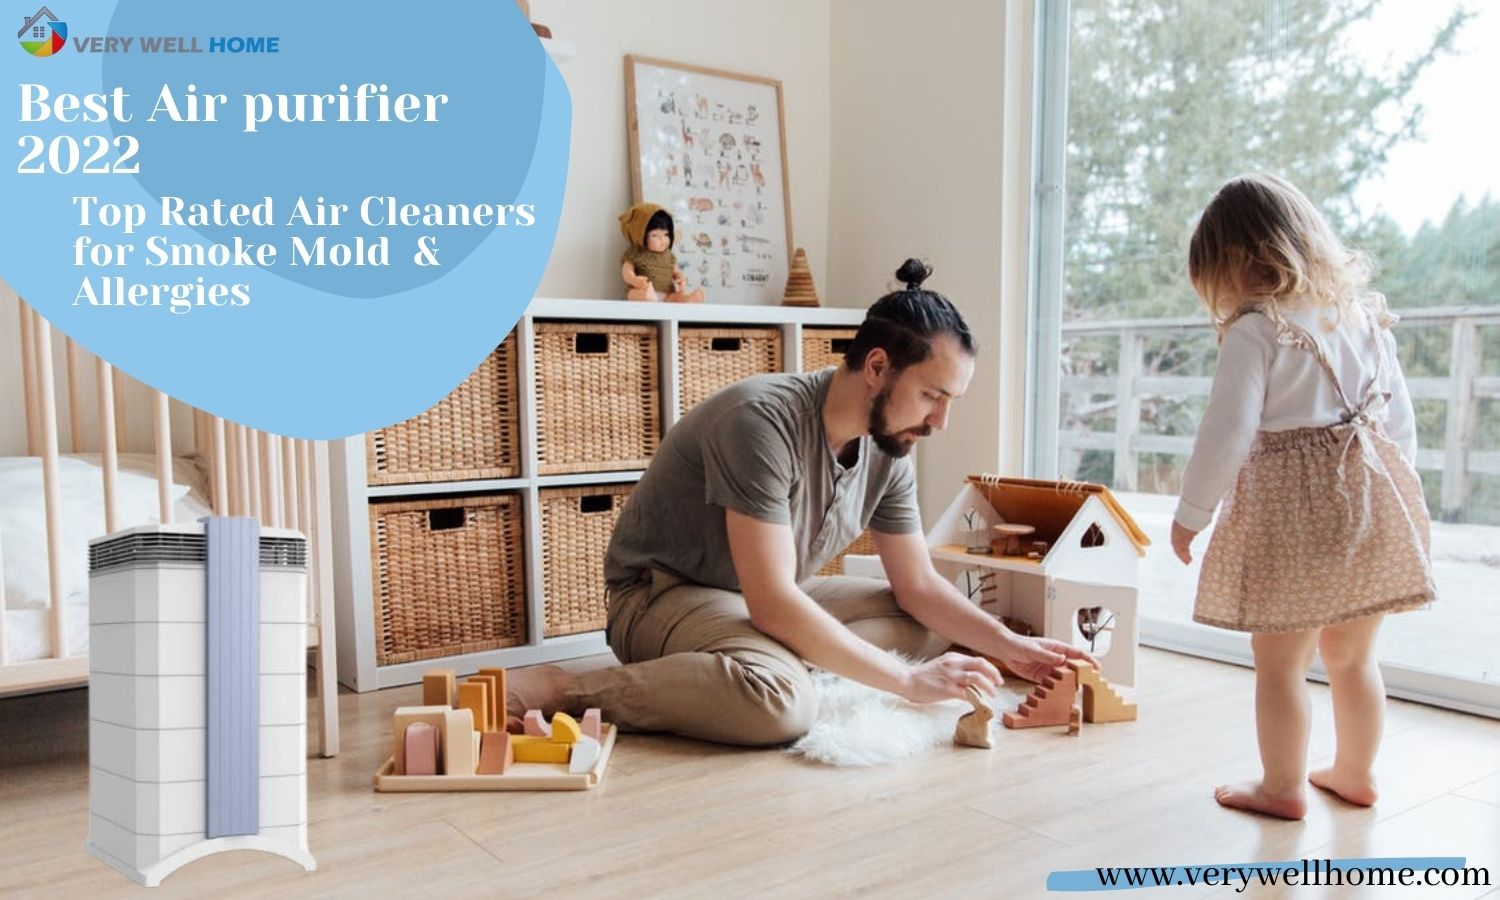 Best Air purifier 2022 - Top Rated Air Cleaners for Smoke Mold & Allergies